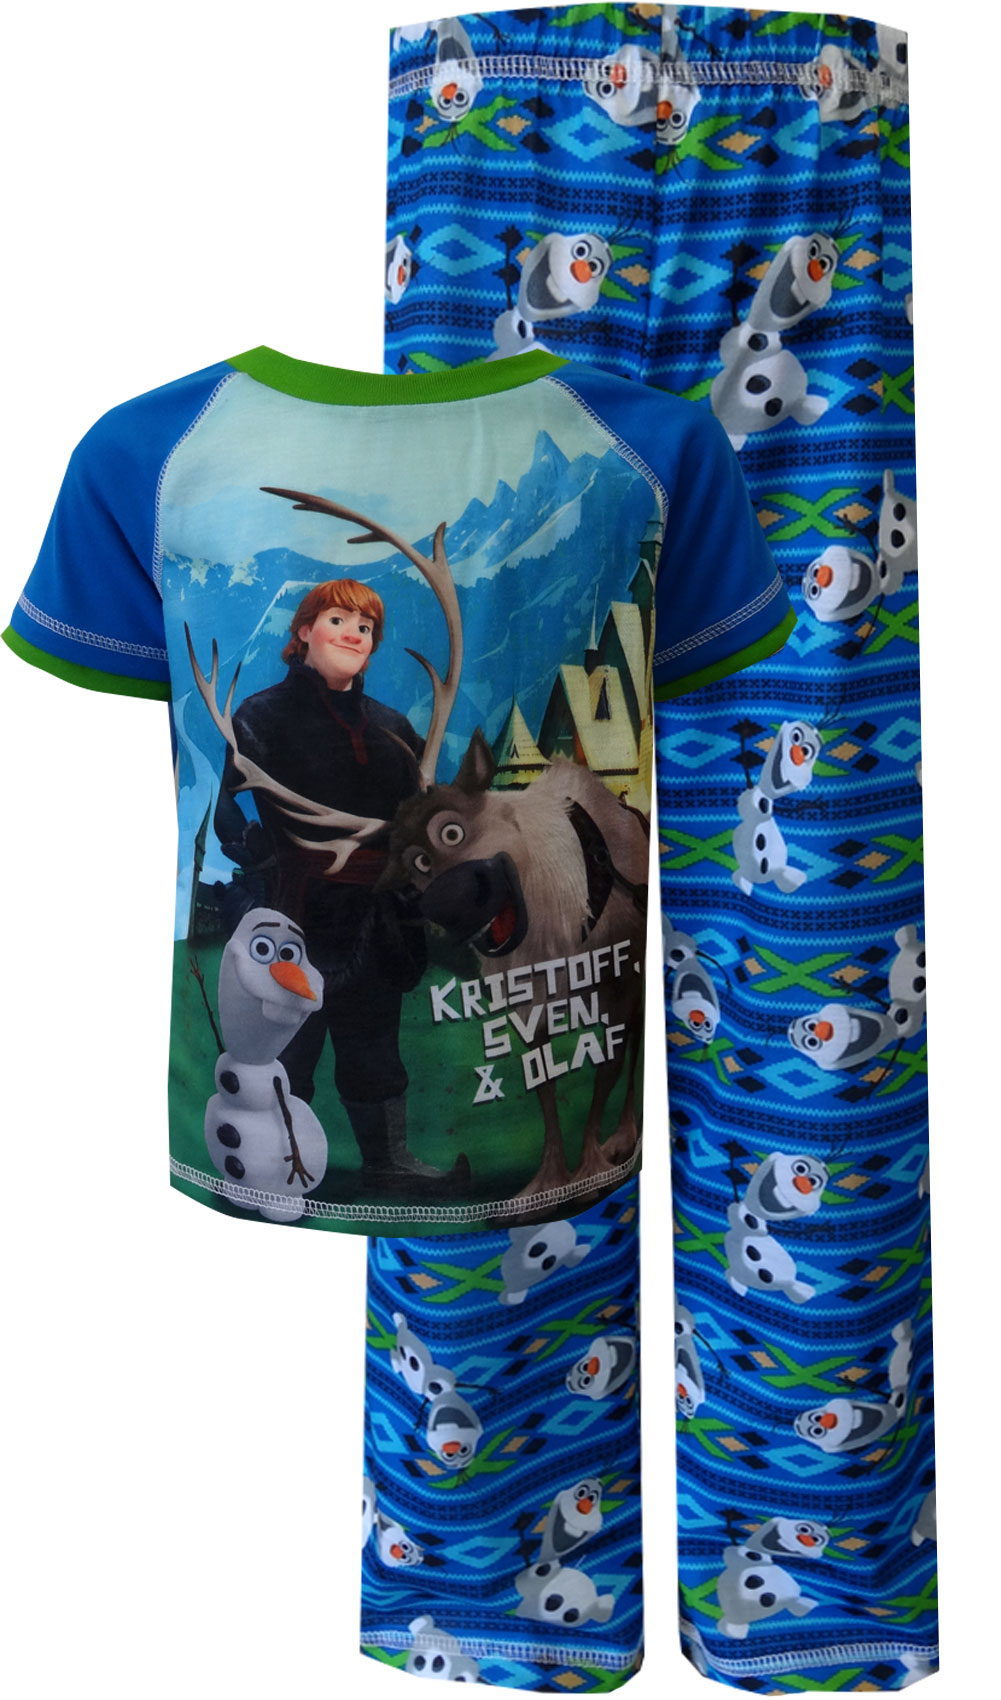 Image of Disney Frozen Olaf with Kristoff and Sven Pajama for boys